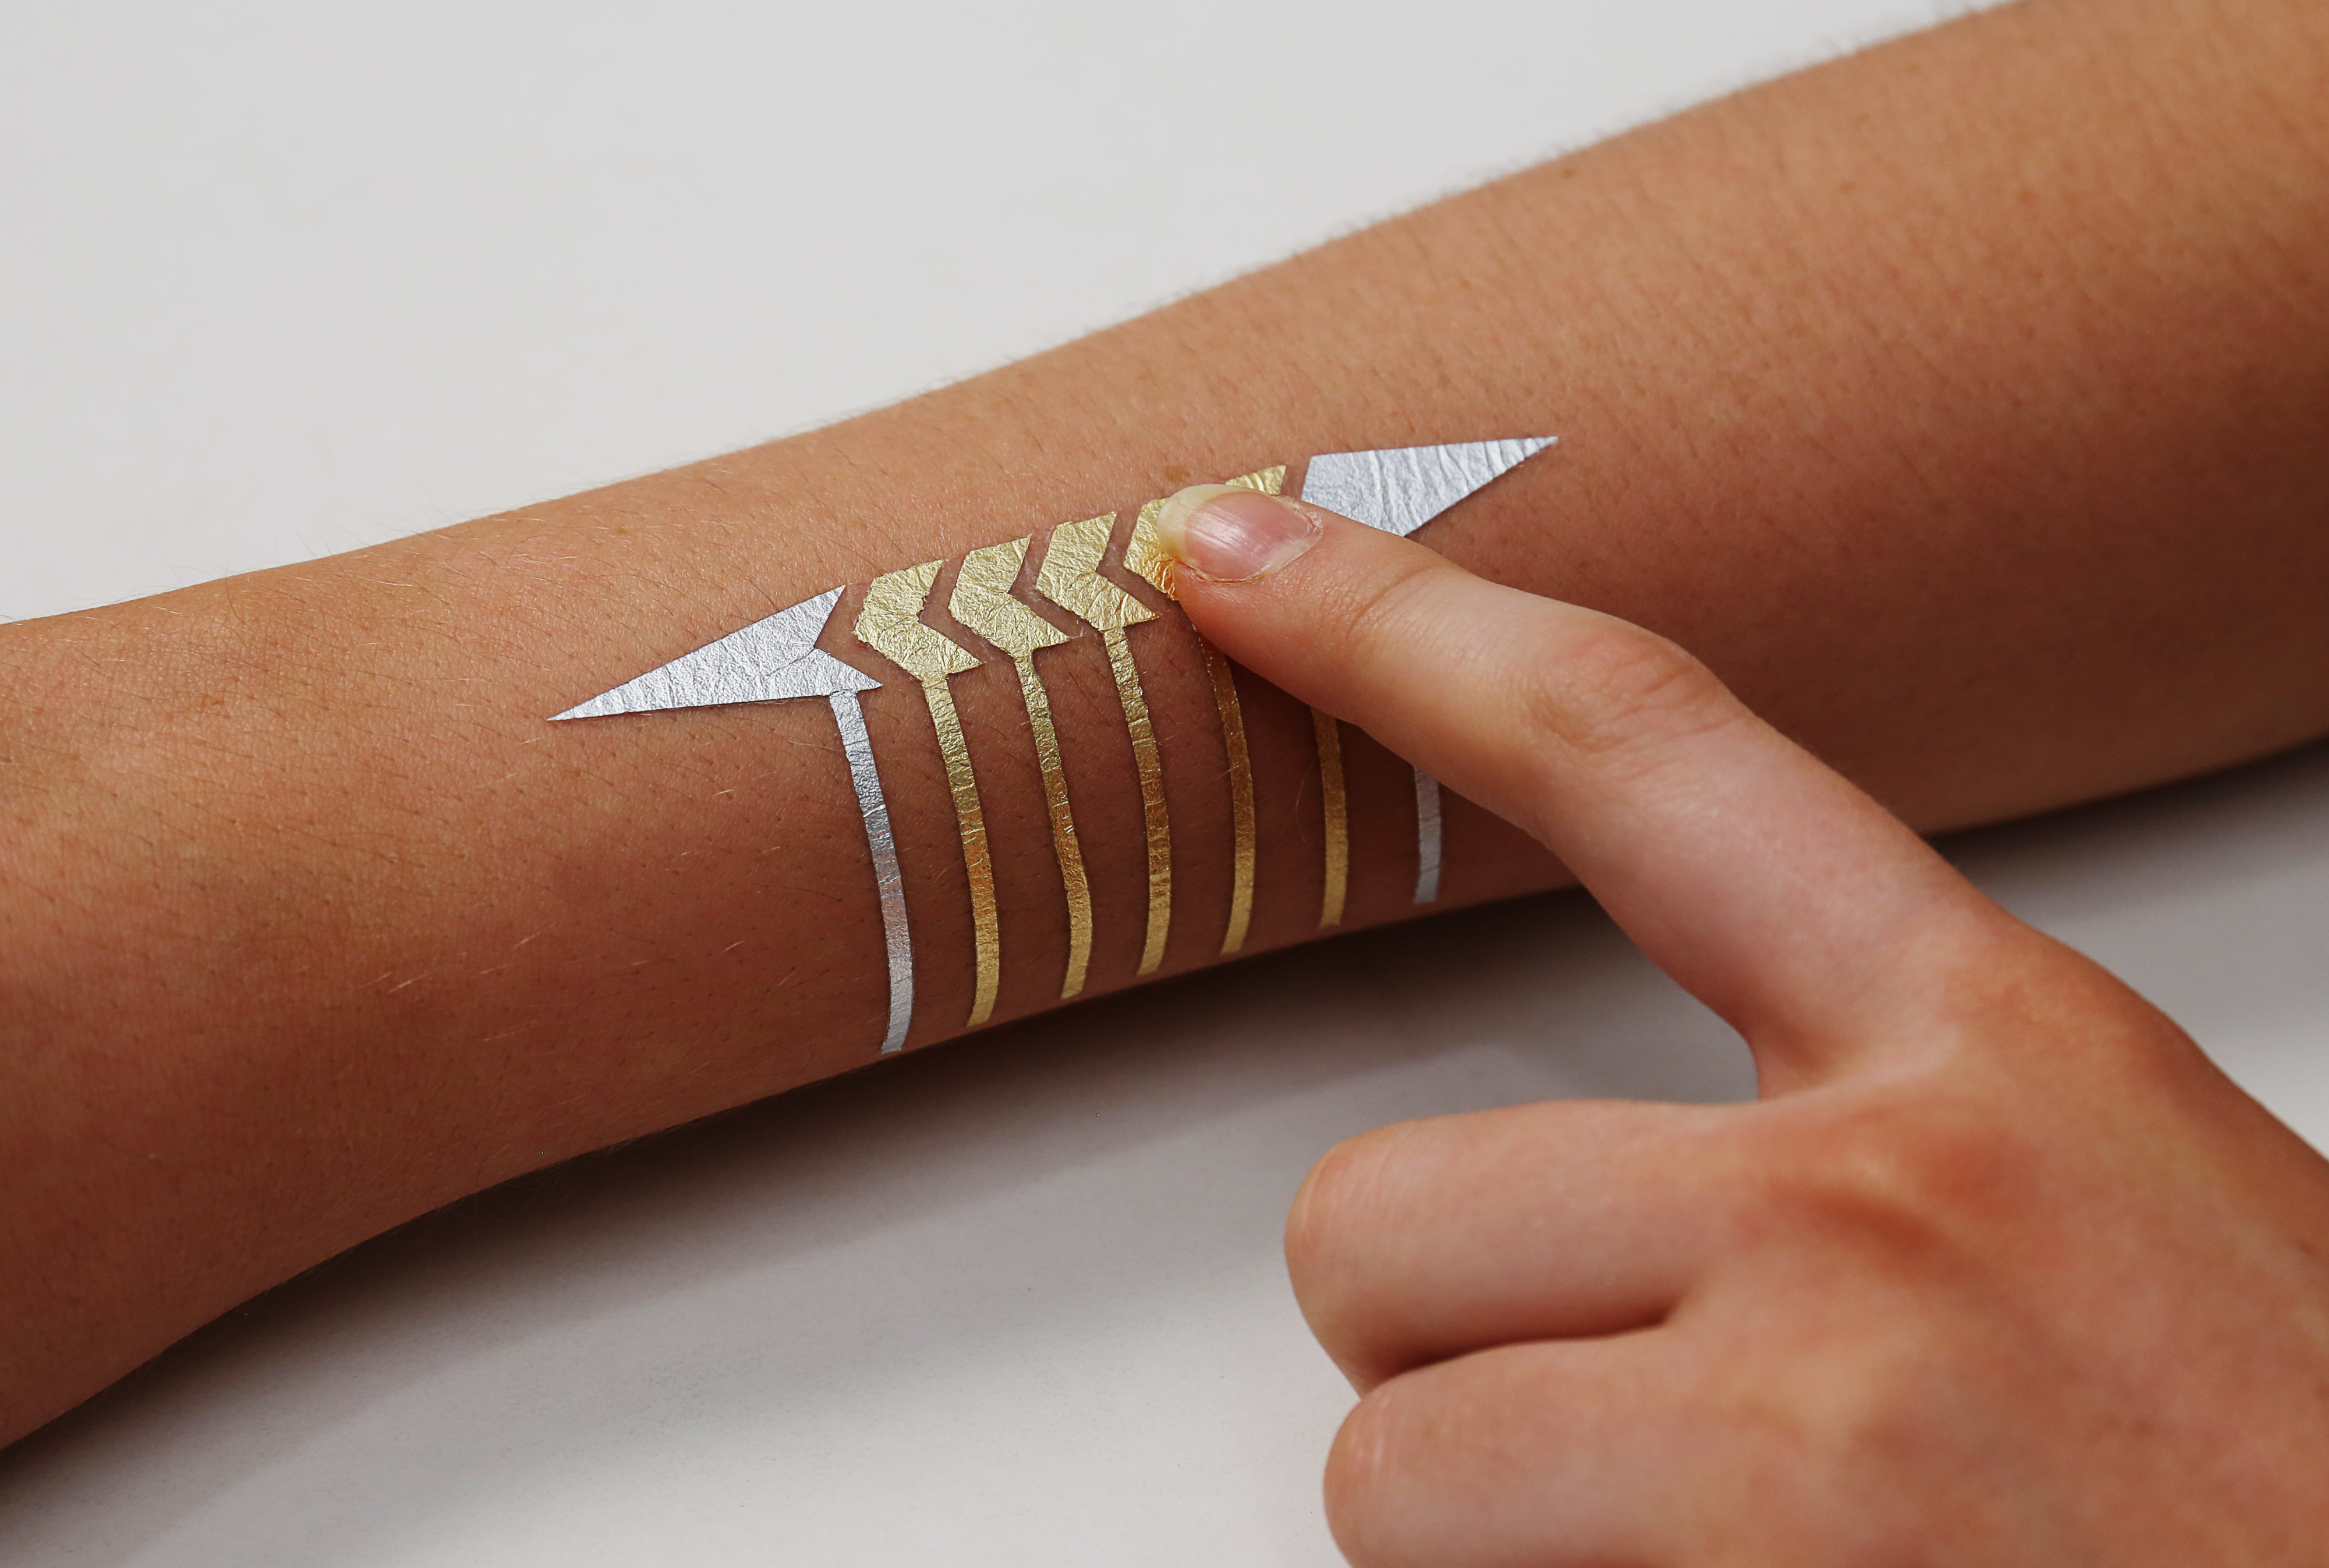 Microsoft research and mit unveil smart tattoos geekwire for Fake tattoo creator